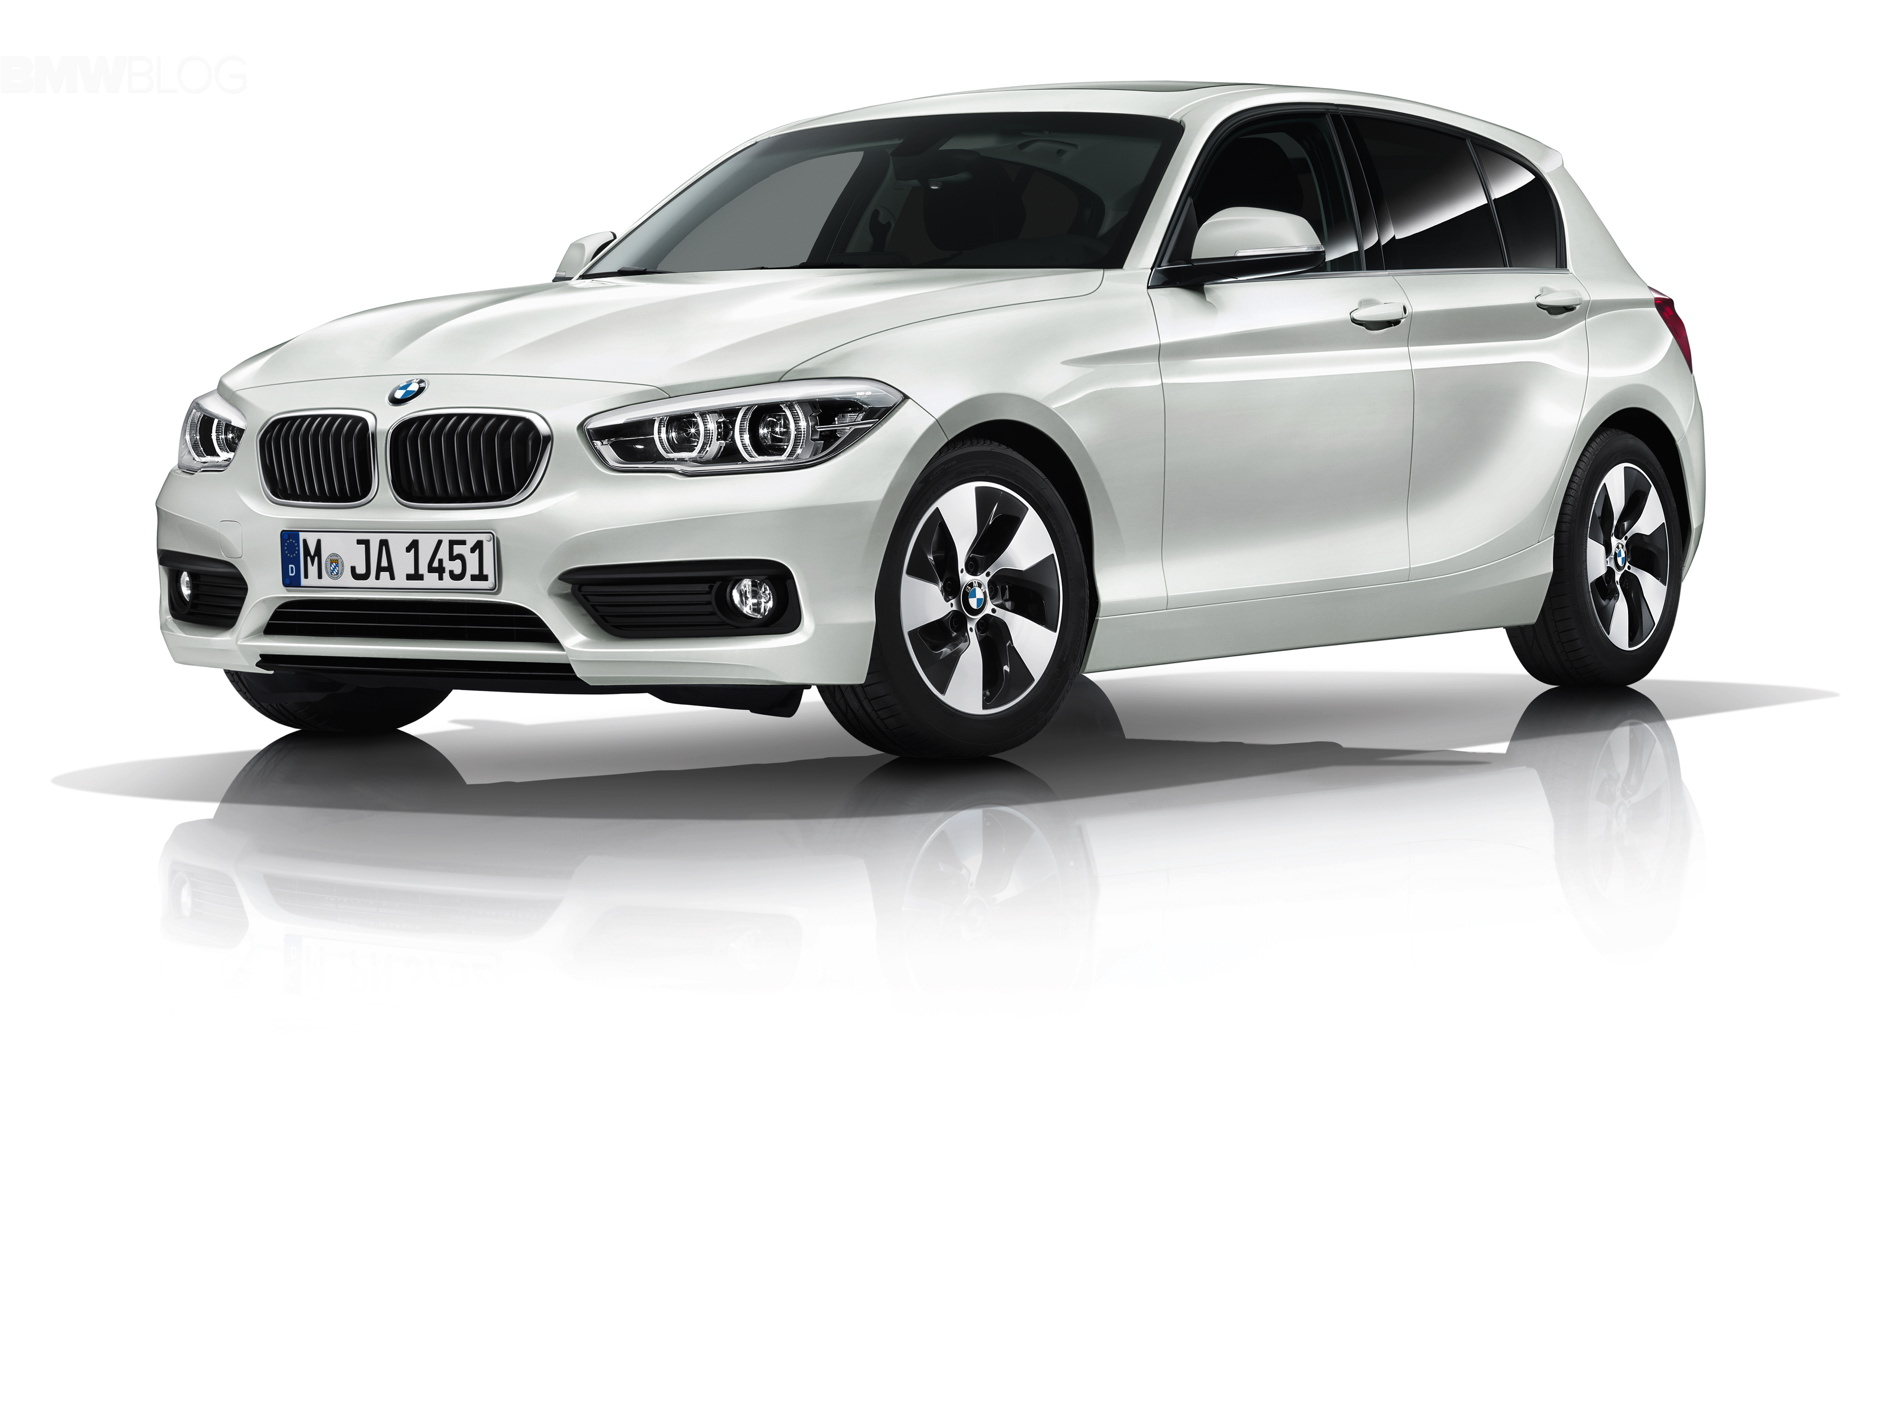 2015 BMW 1 Series Facelift Videos